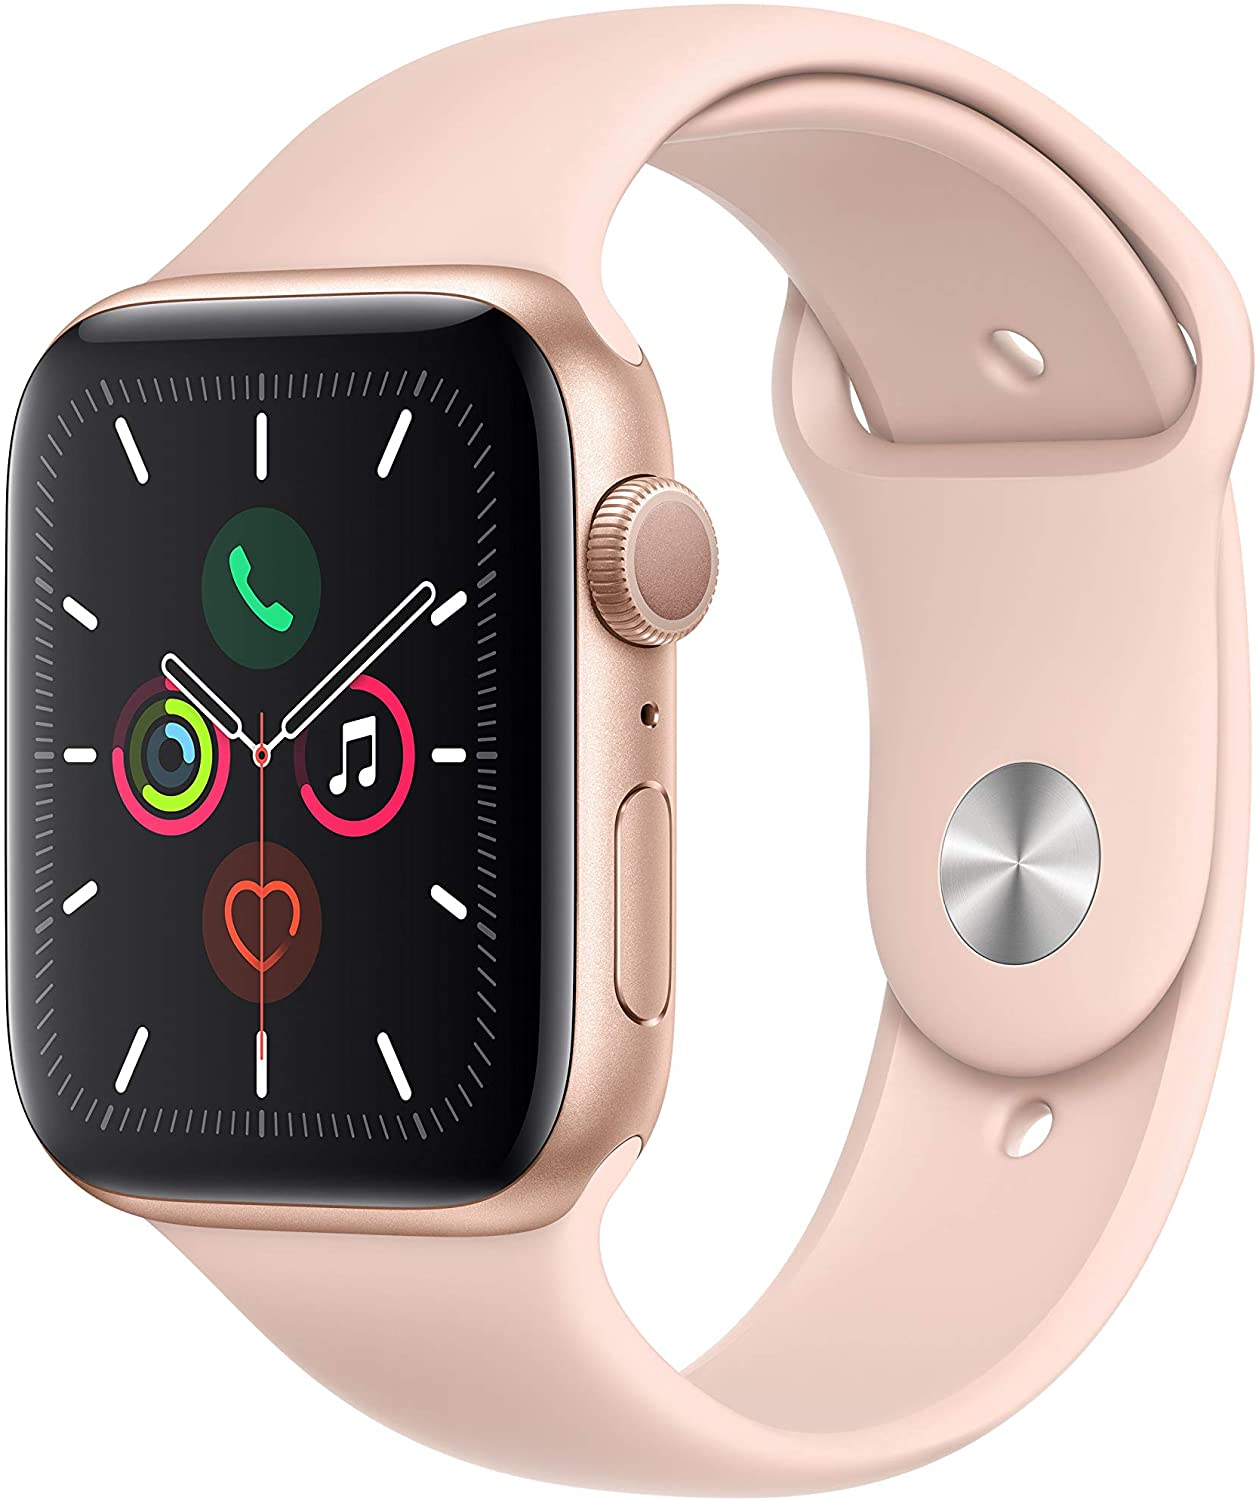 Apple Watch Series 5 dorado